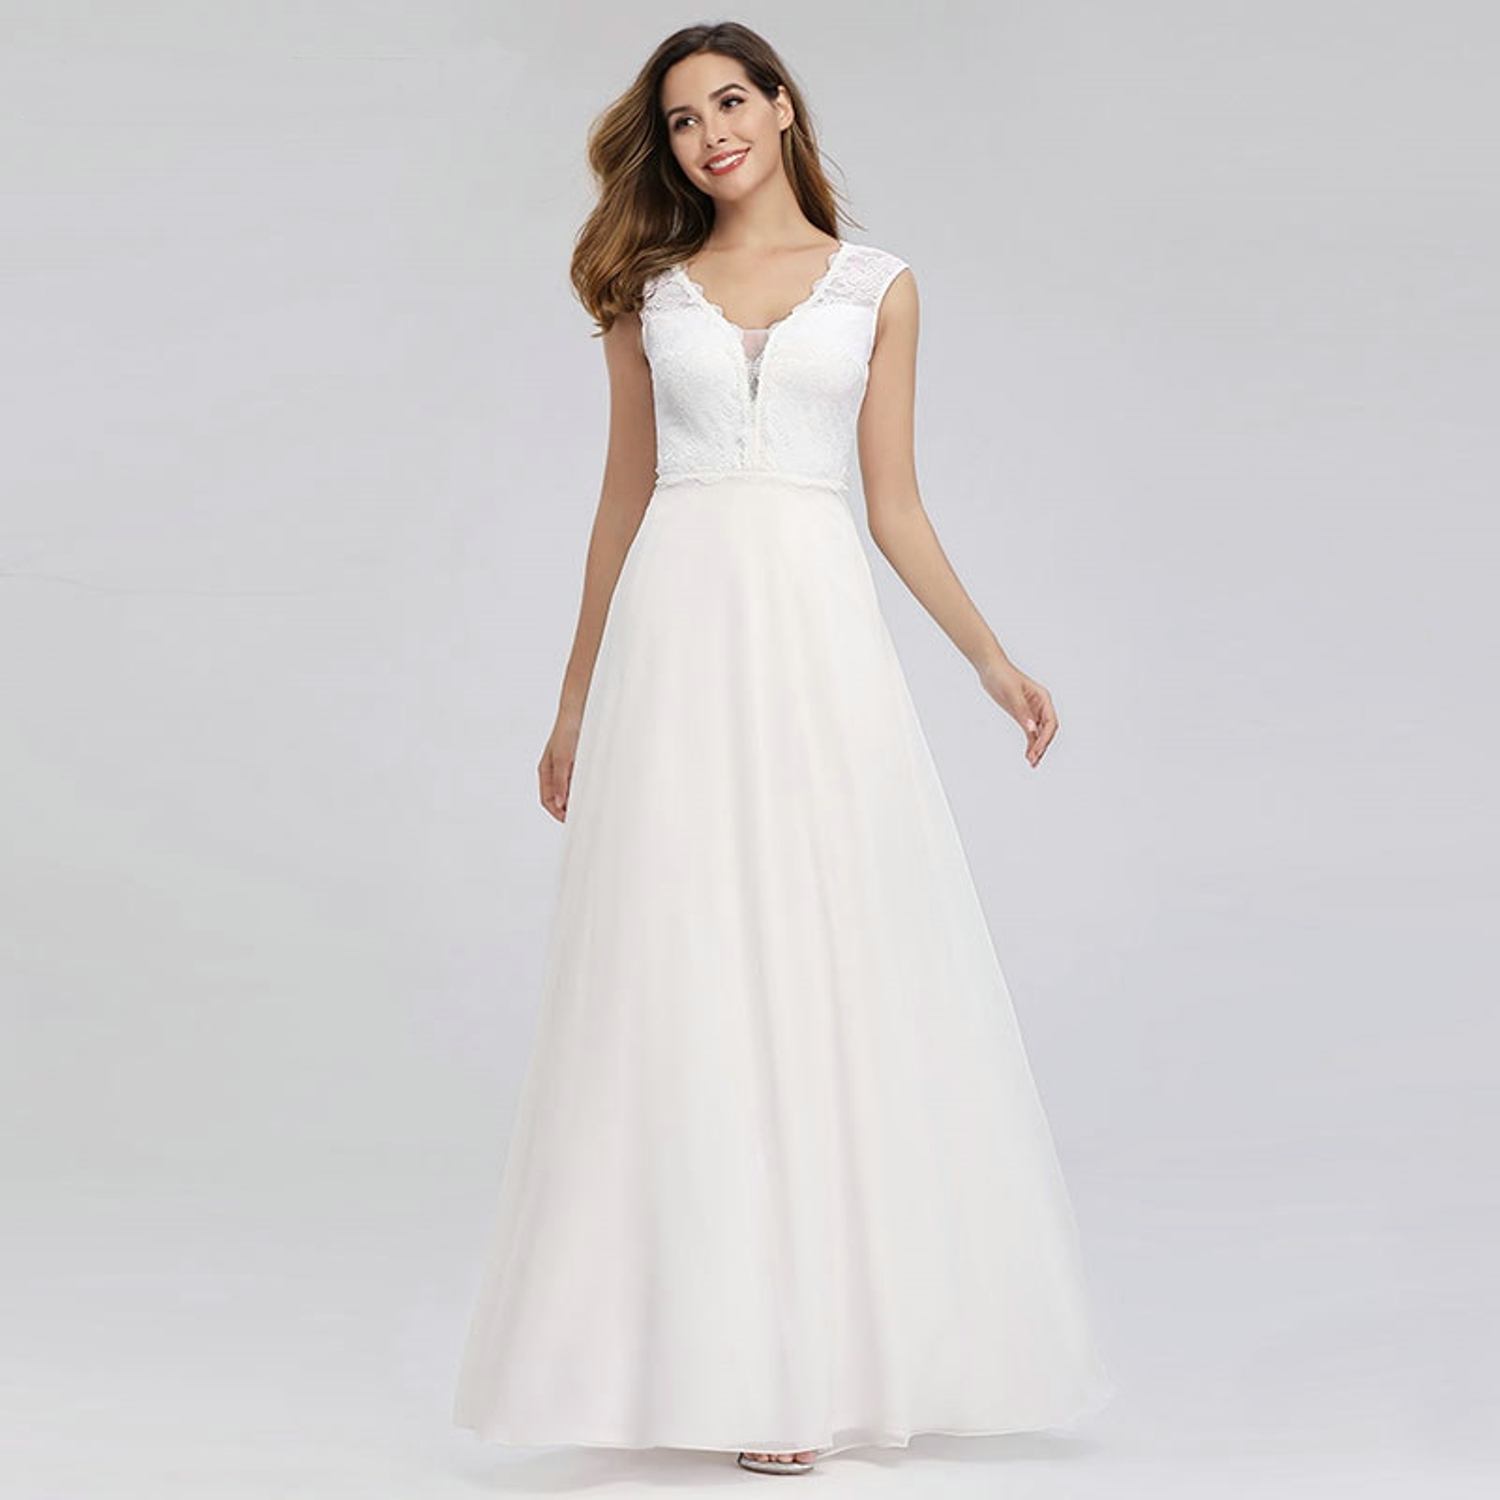 What Do You Need To Know While Choosing Summer Wedding Dresses The Best Wedding Dresses,Where To Buy Wedding Dresses Online Usa